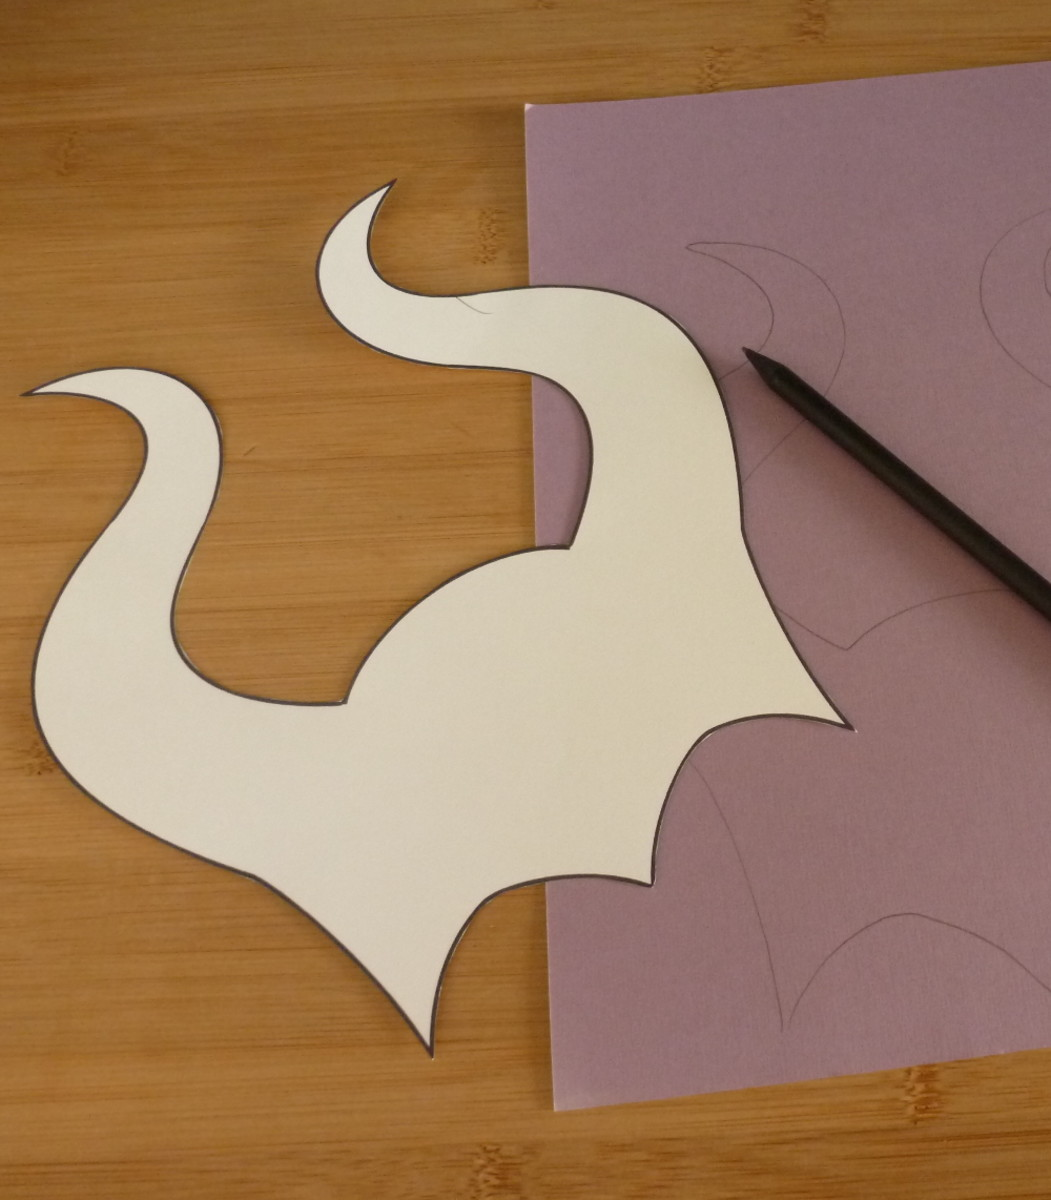 Maleficent horns DIY template free design to make for Halloween and parties